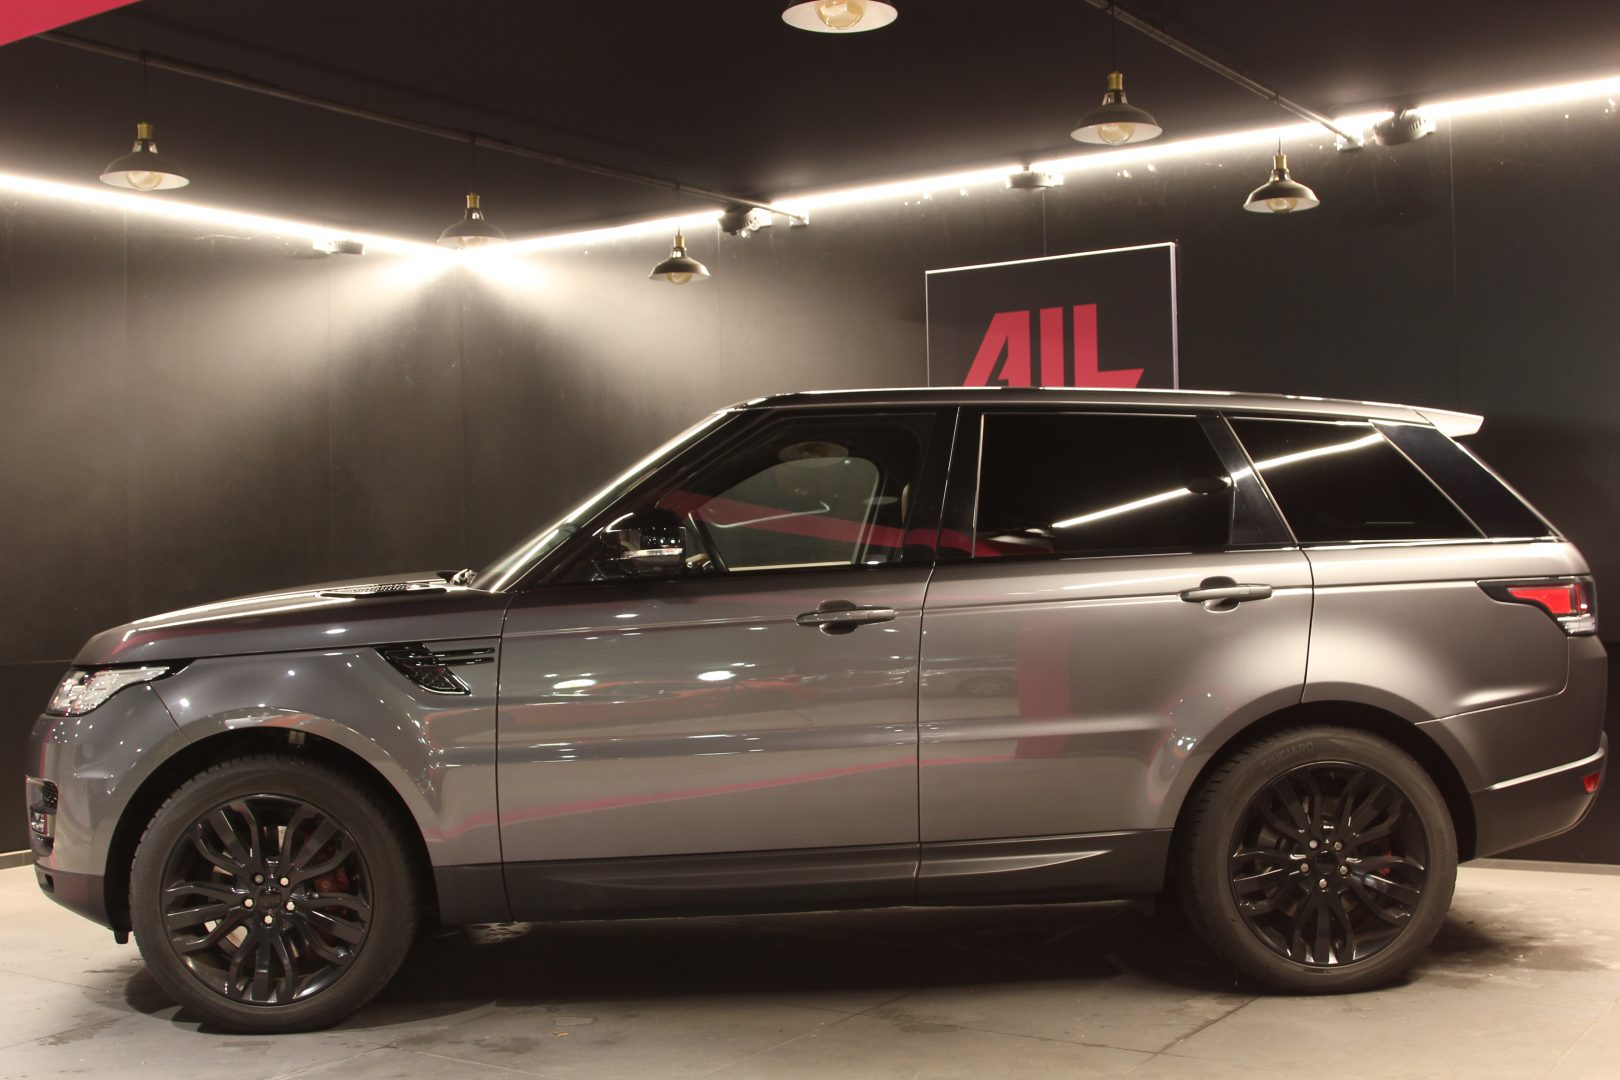 AIL Land Rover Range Rover Sport Autobiography  5.0 V8 4